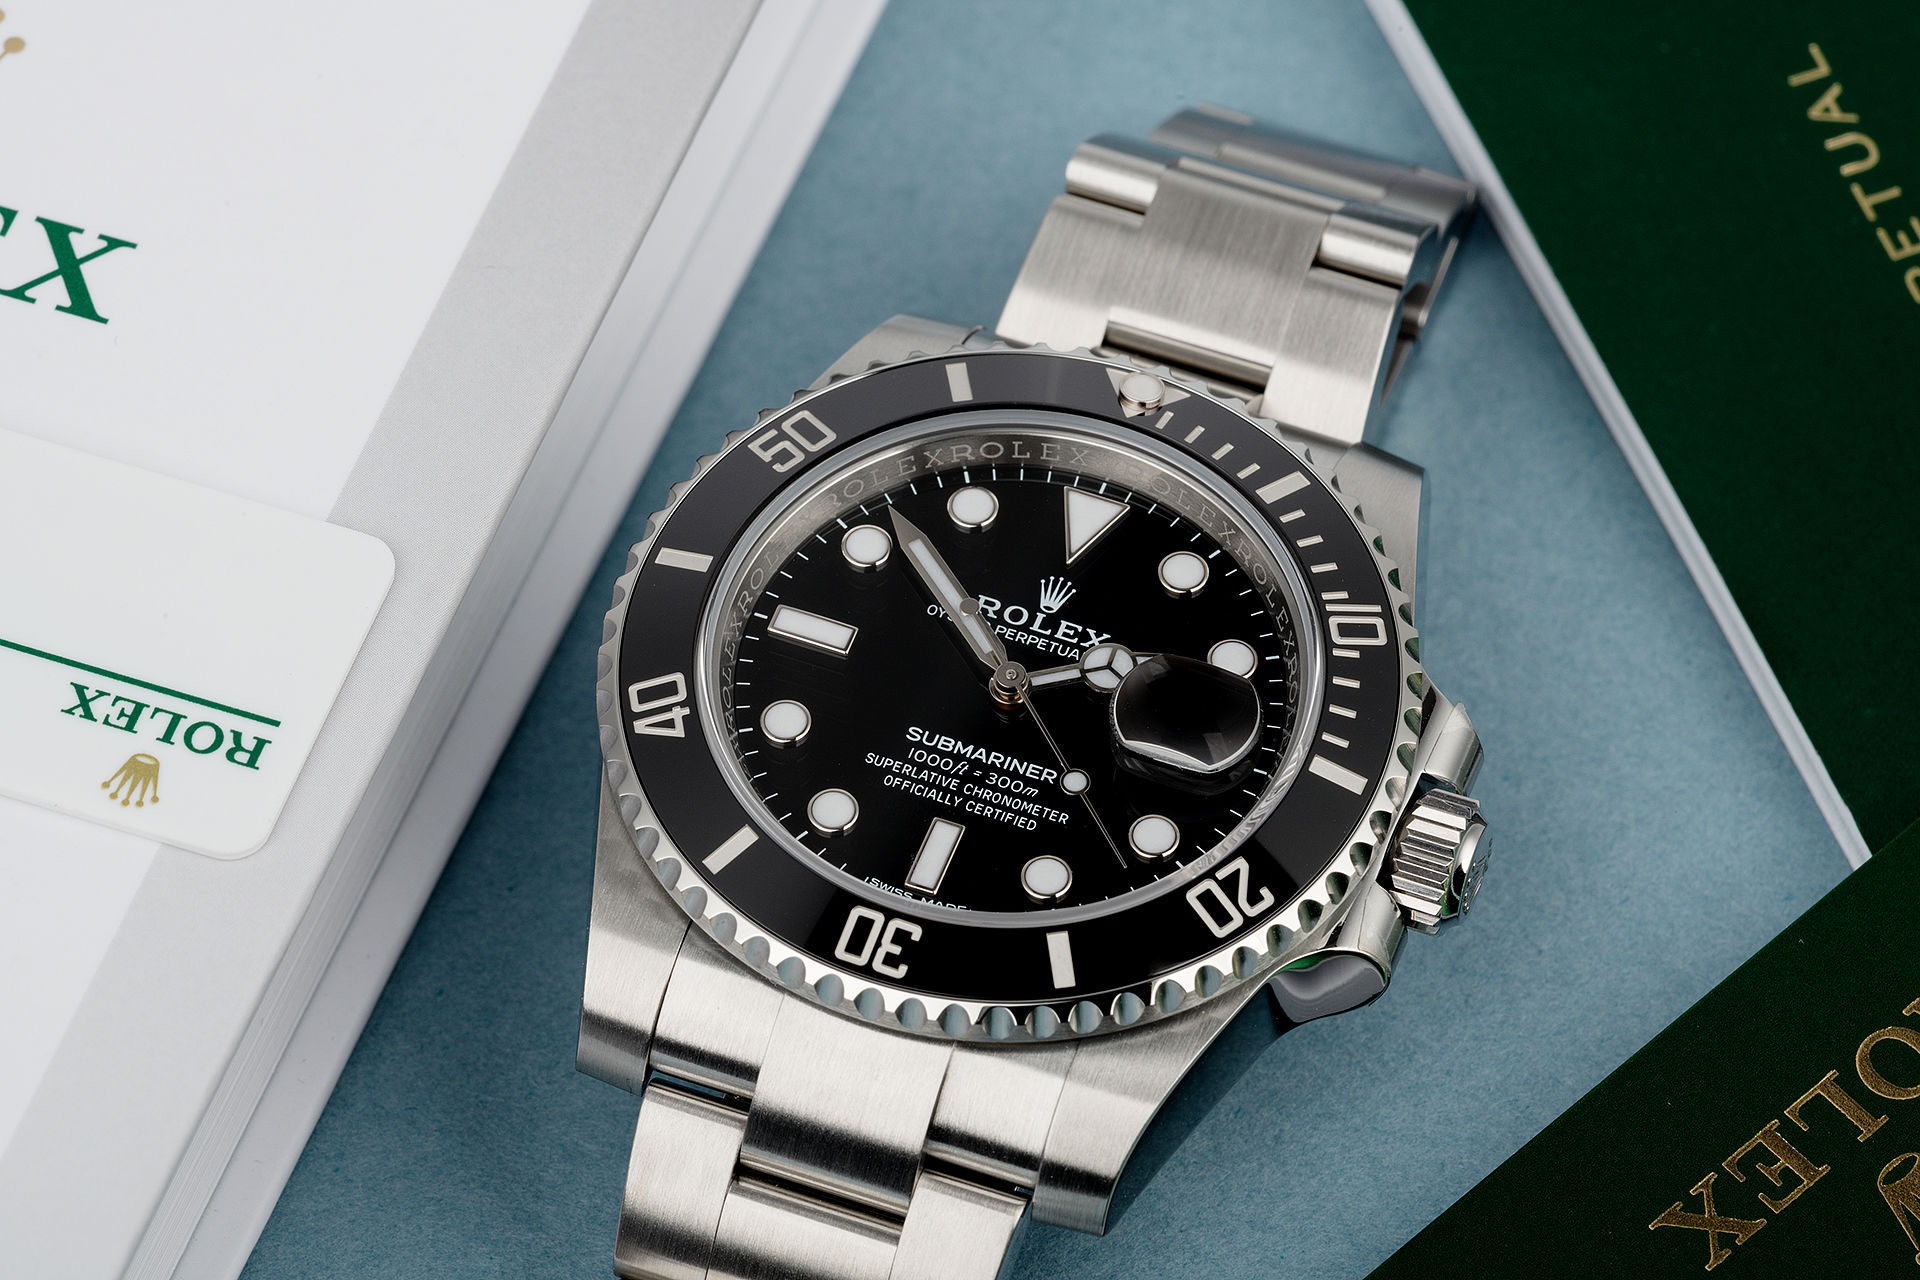 ref 116610LN | '5 Year Warranty' | Rolex Submariner Date